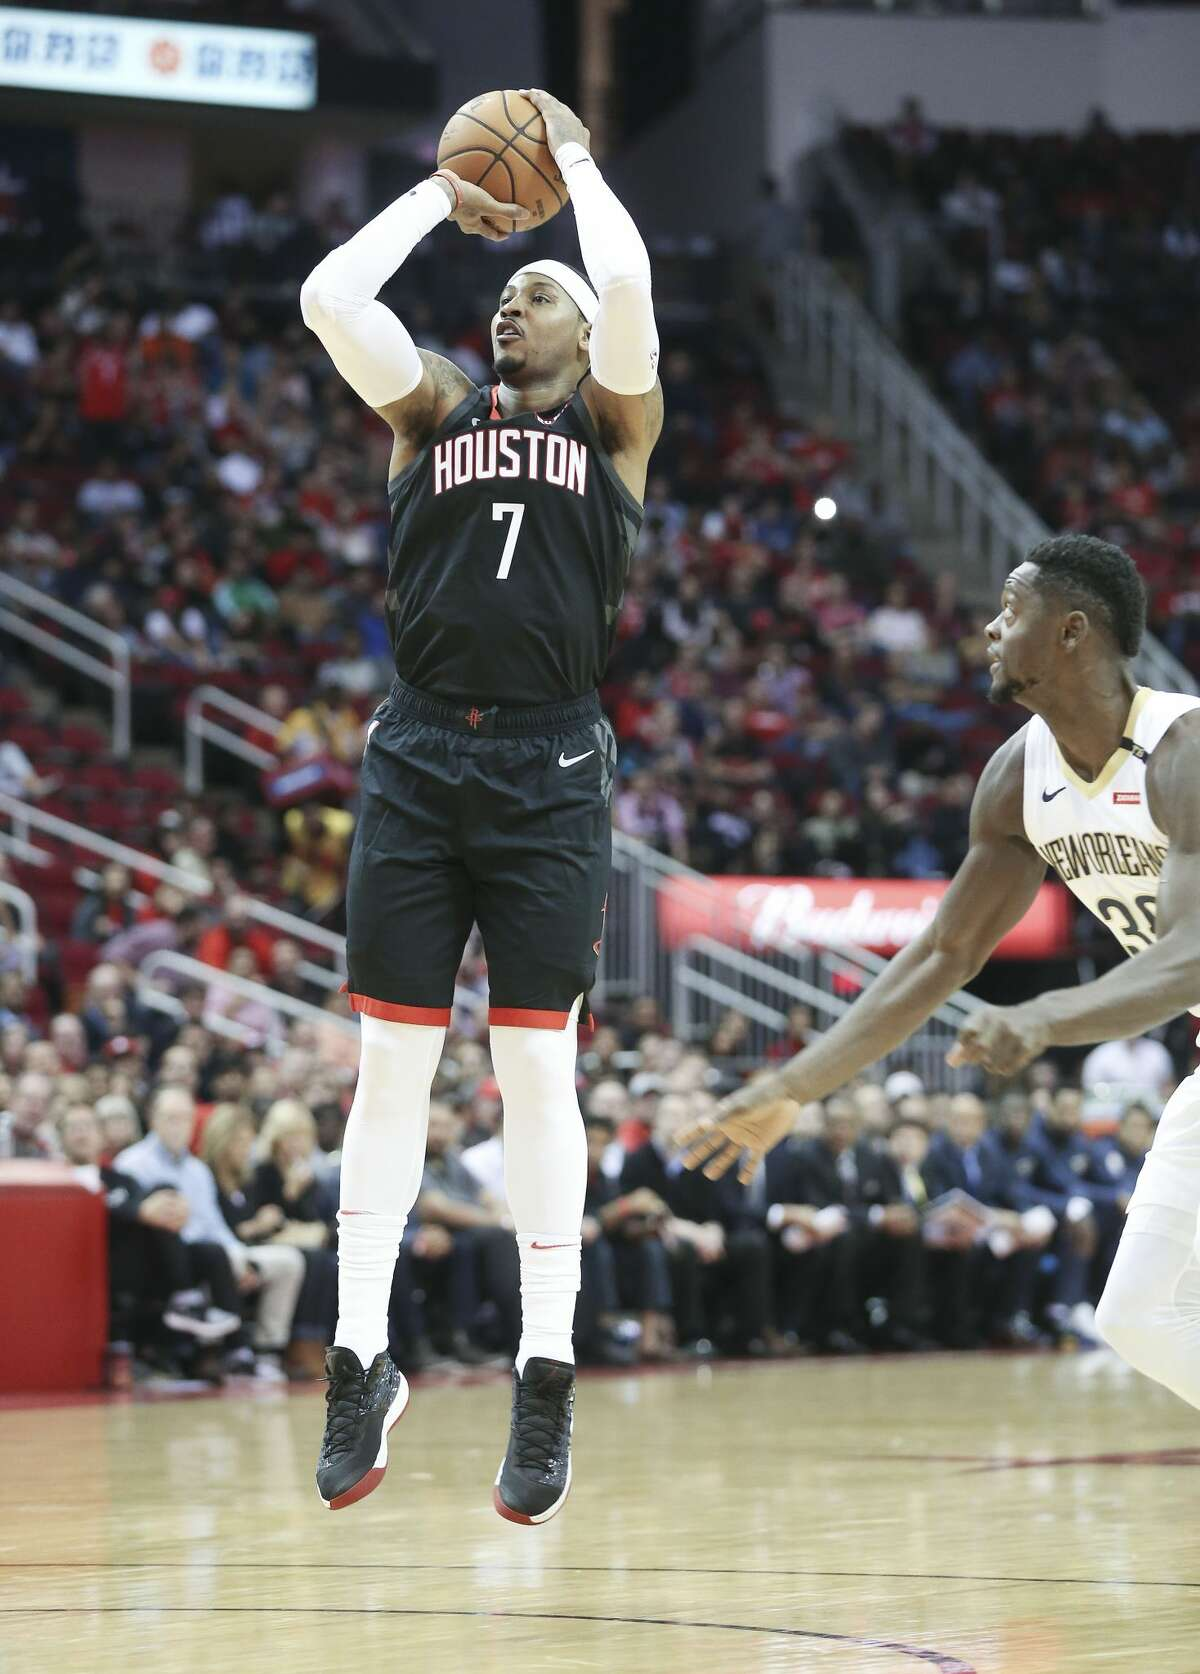 Oct. 17: Pelicans 131, Rockets 112 In his Rockets debut, Anthony scored 9 points on 3-of-10 shooting. In a game where the Rockets got blown out, Anthony had a plus-minus of minus-20.